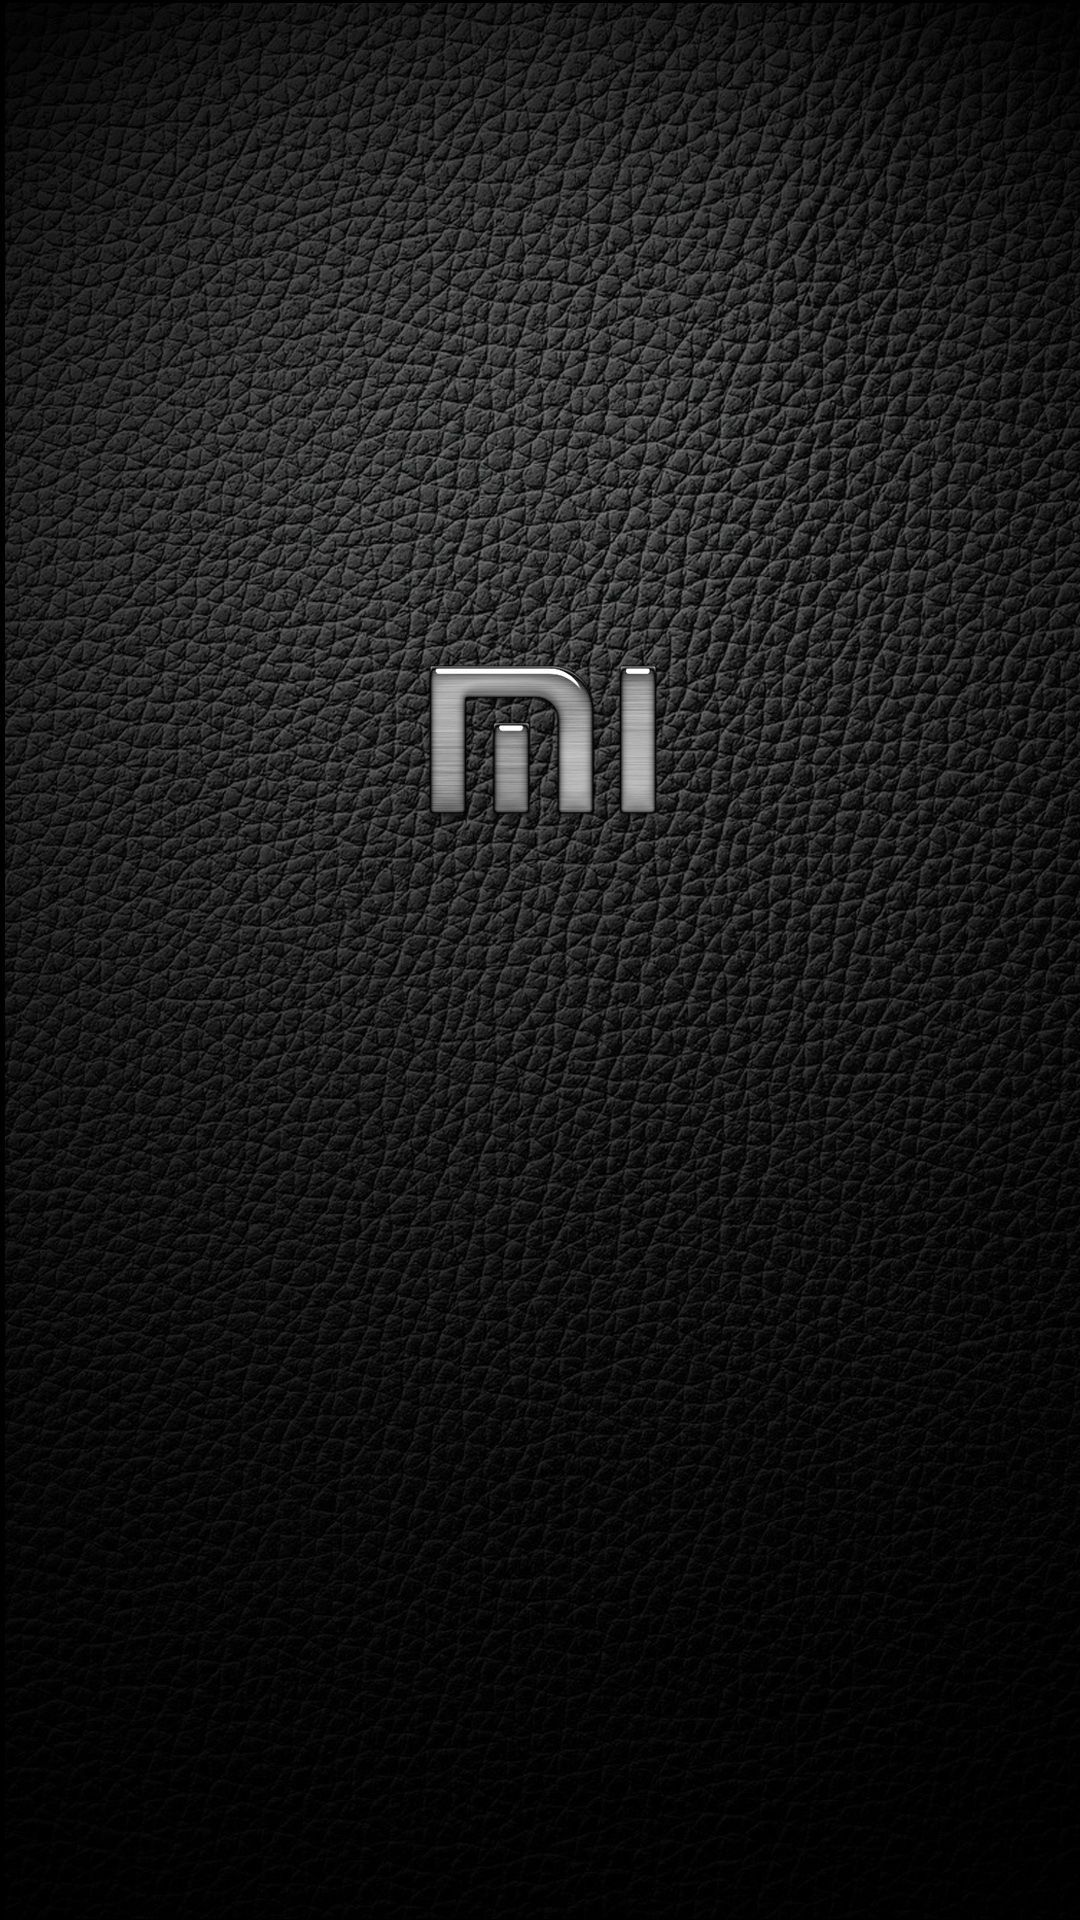 Pin On Mobile Wallpaper Android